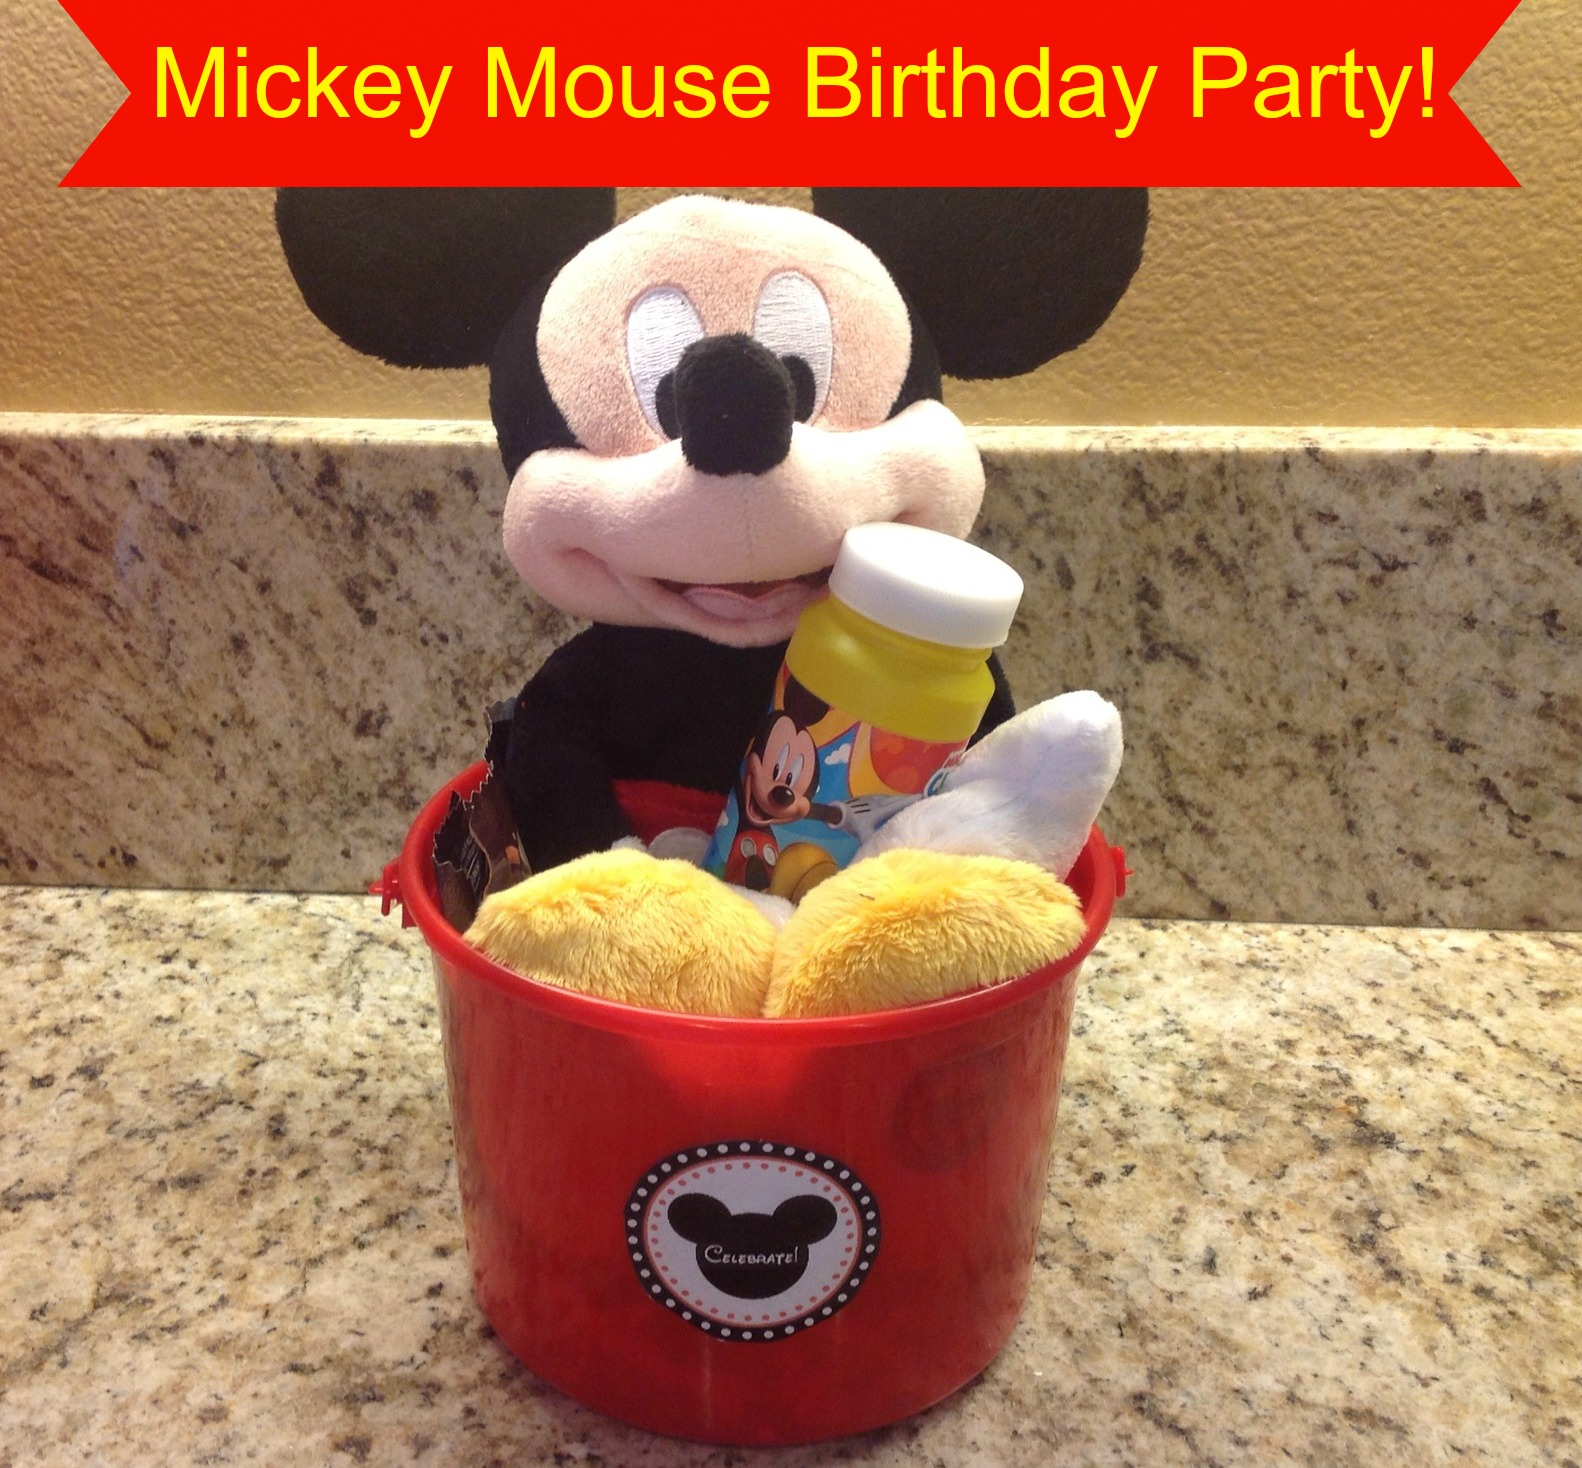 Mickey Mouse Birthday Party Theme Image